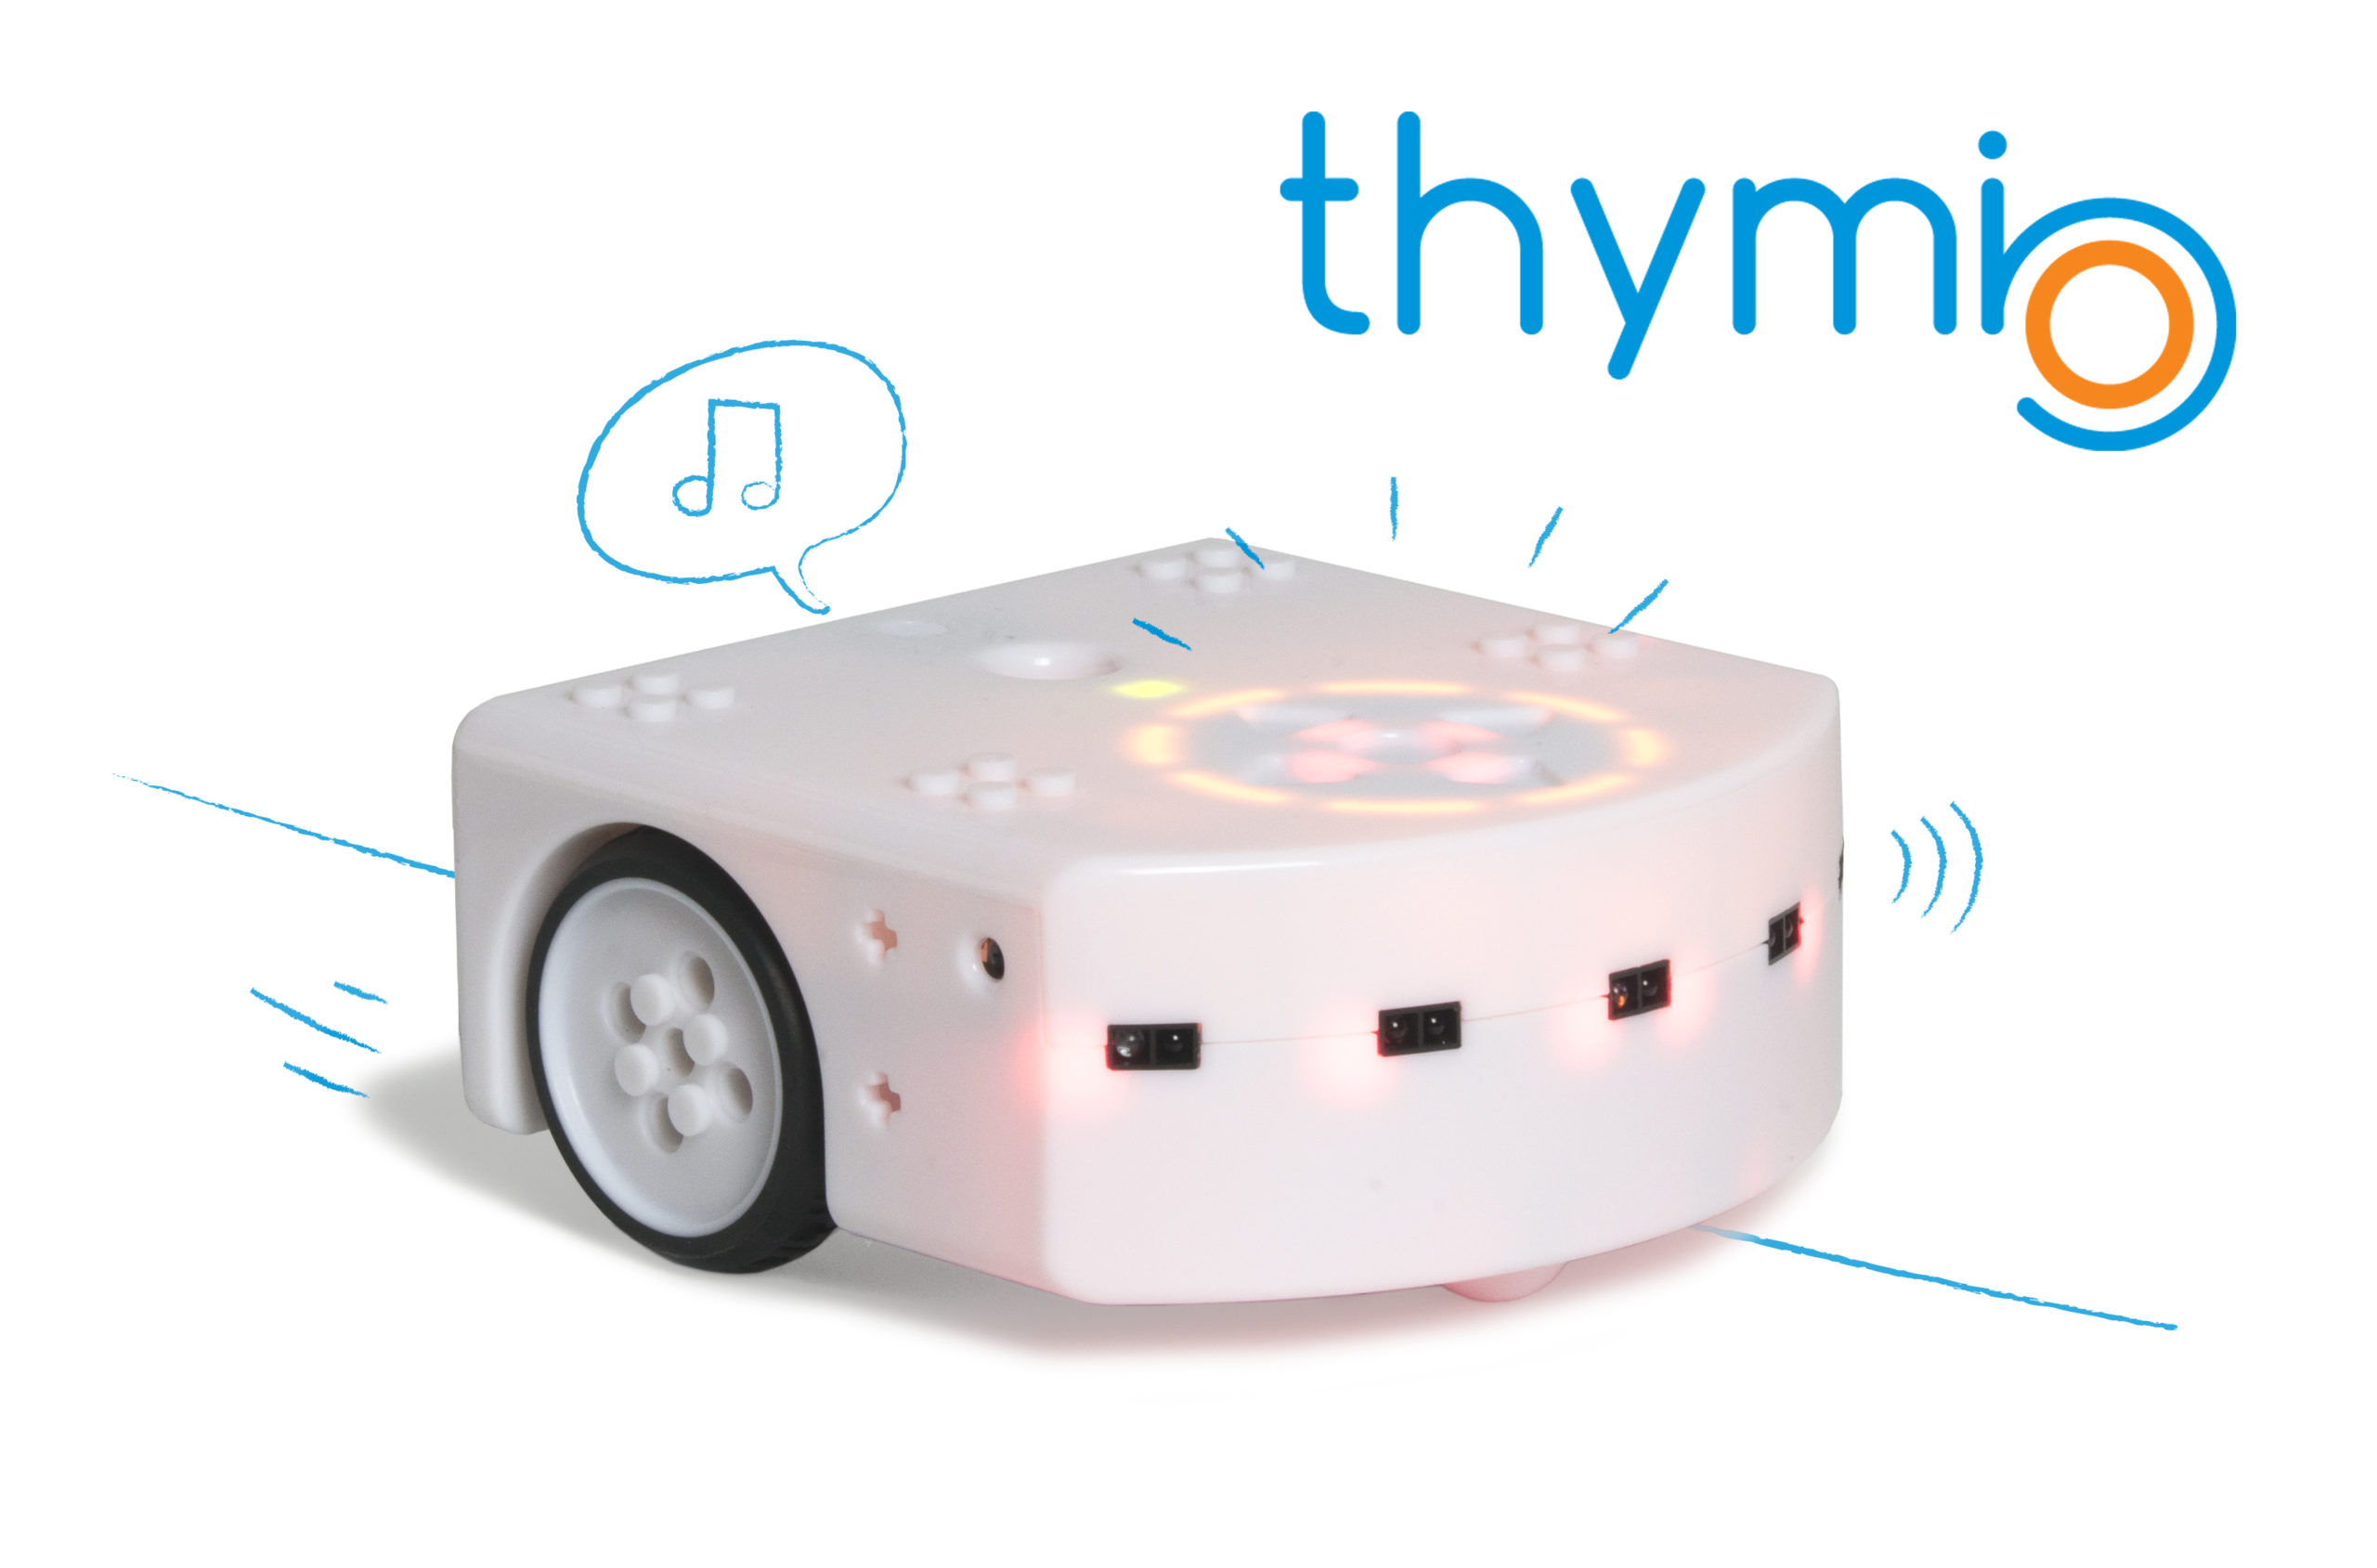 Picture of the Thymio robot